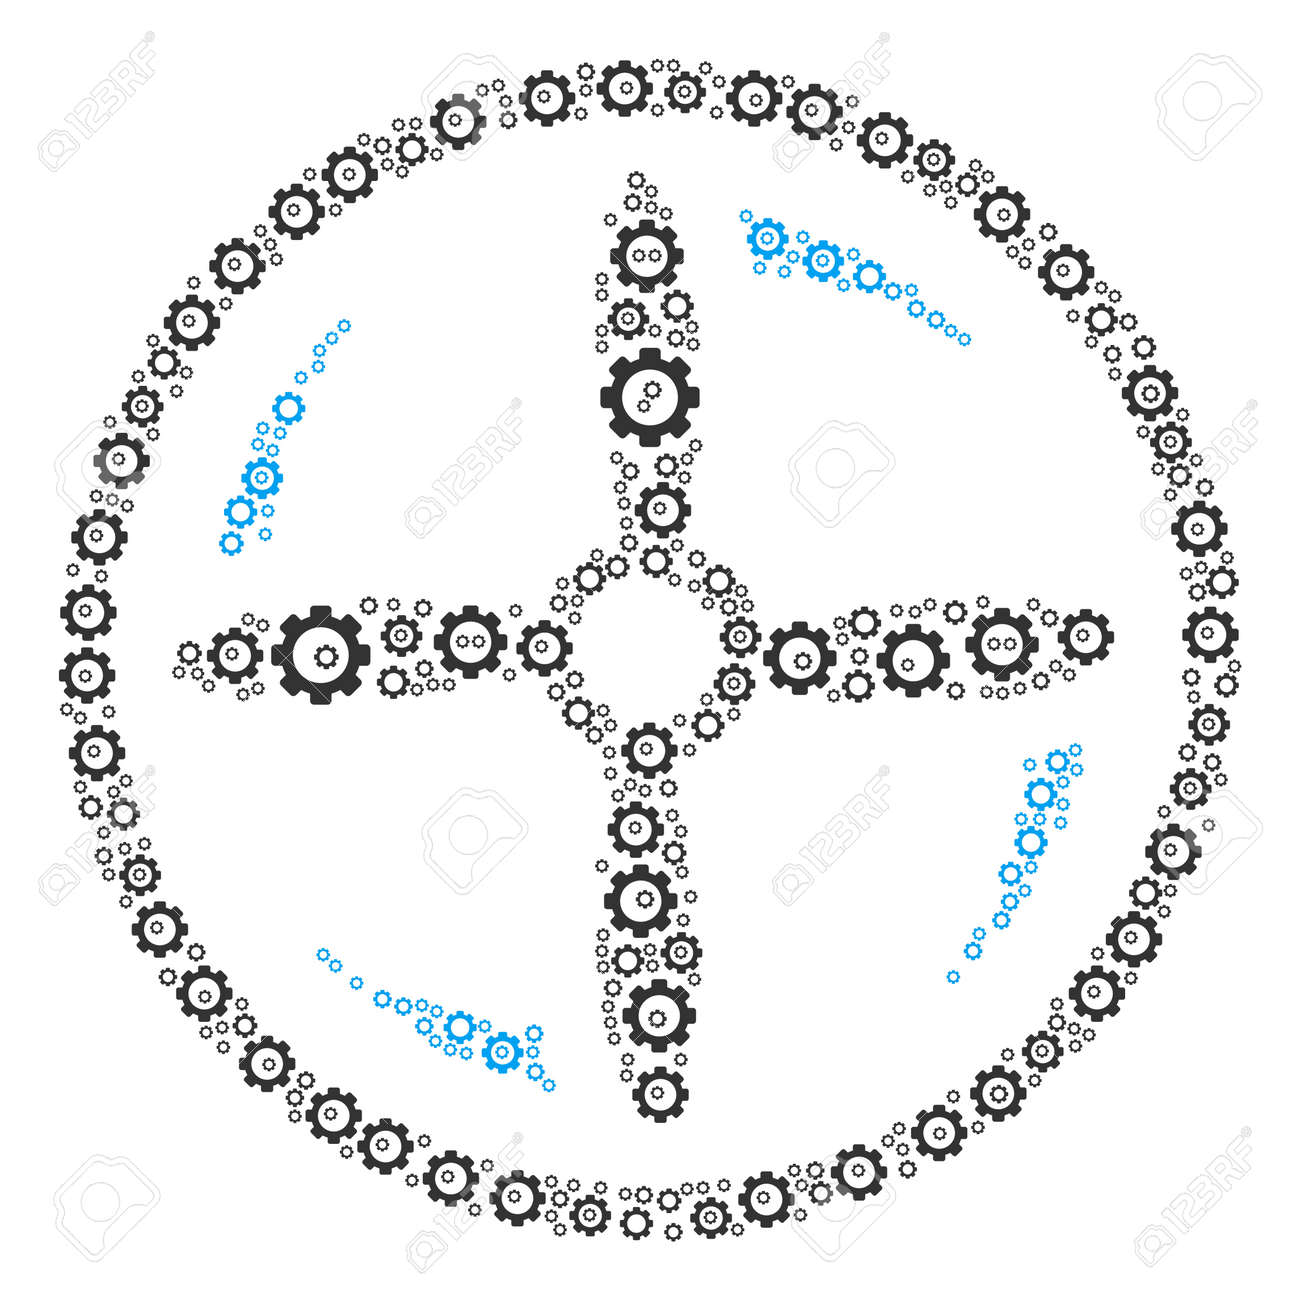 Drone Screw Rotation mosaic of cogwheels  Raster tooth gear icons